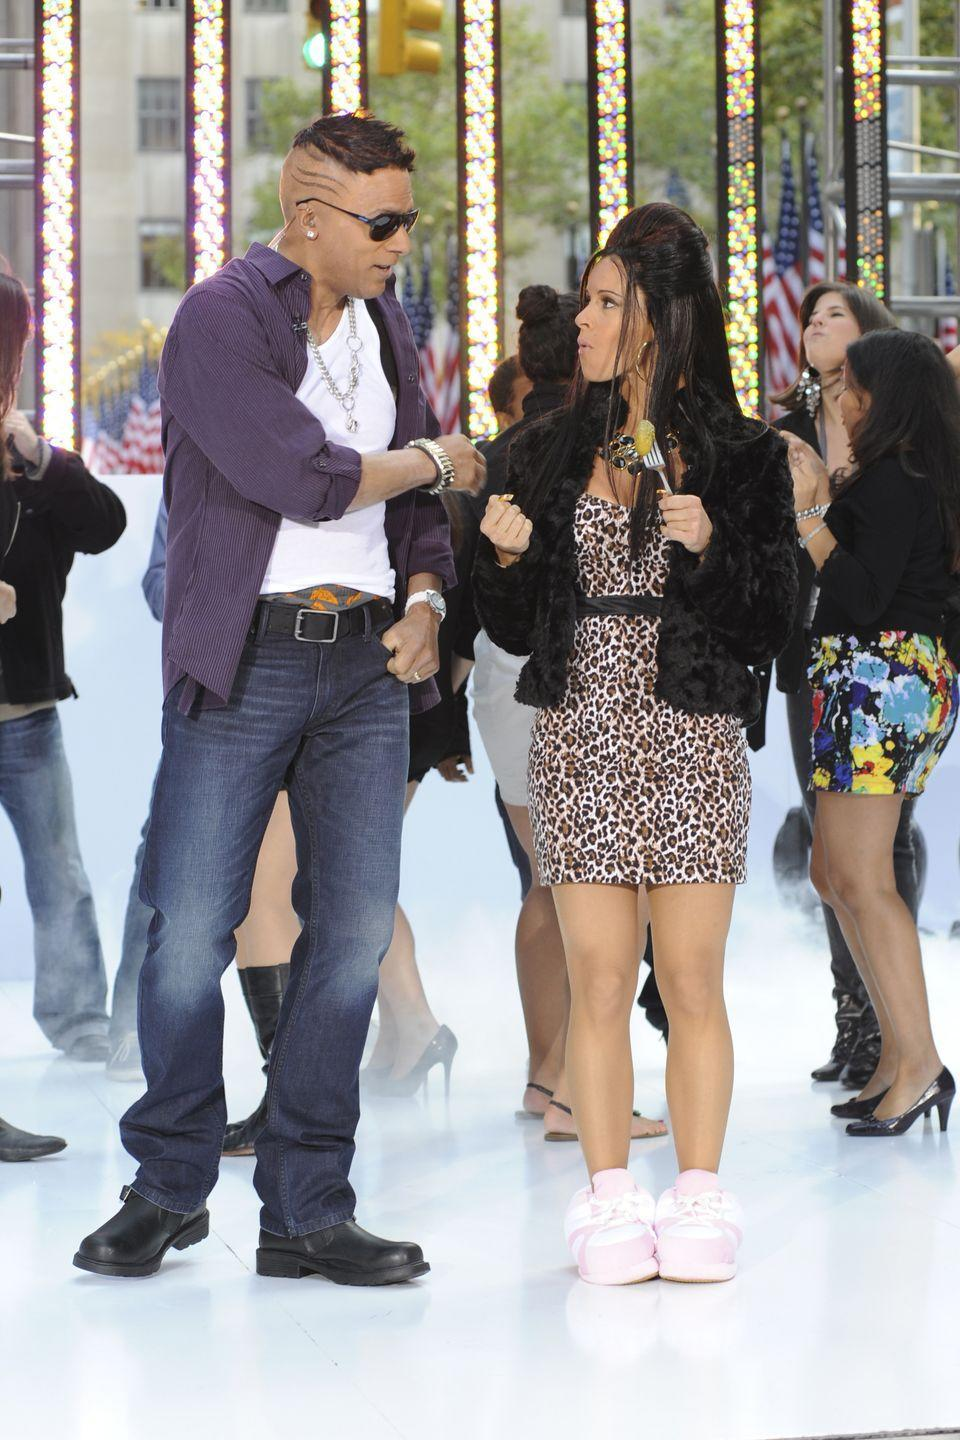 <p>WEEKEND TODAY co-hosts Lester Holt, Jenna Wolfe celebrate Halloween on the Plaza as JERSEY SHORE's Mike 'The Situation' Sorrentino and Nicole 'Snooki' Polizzi</p>